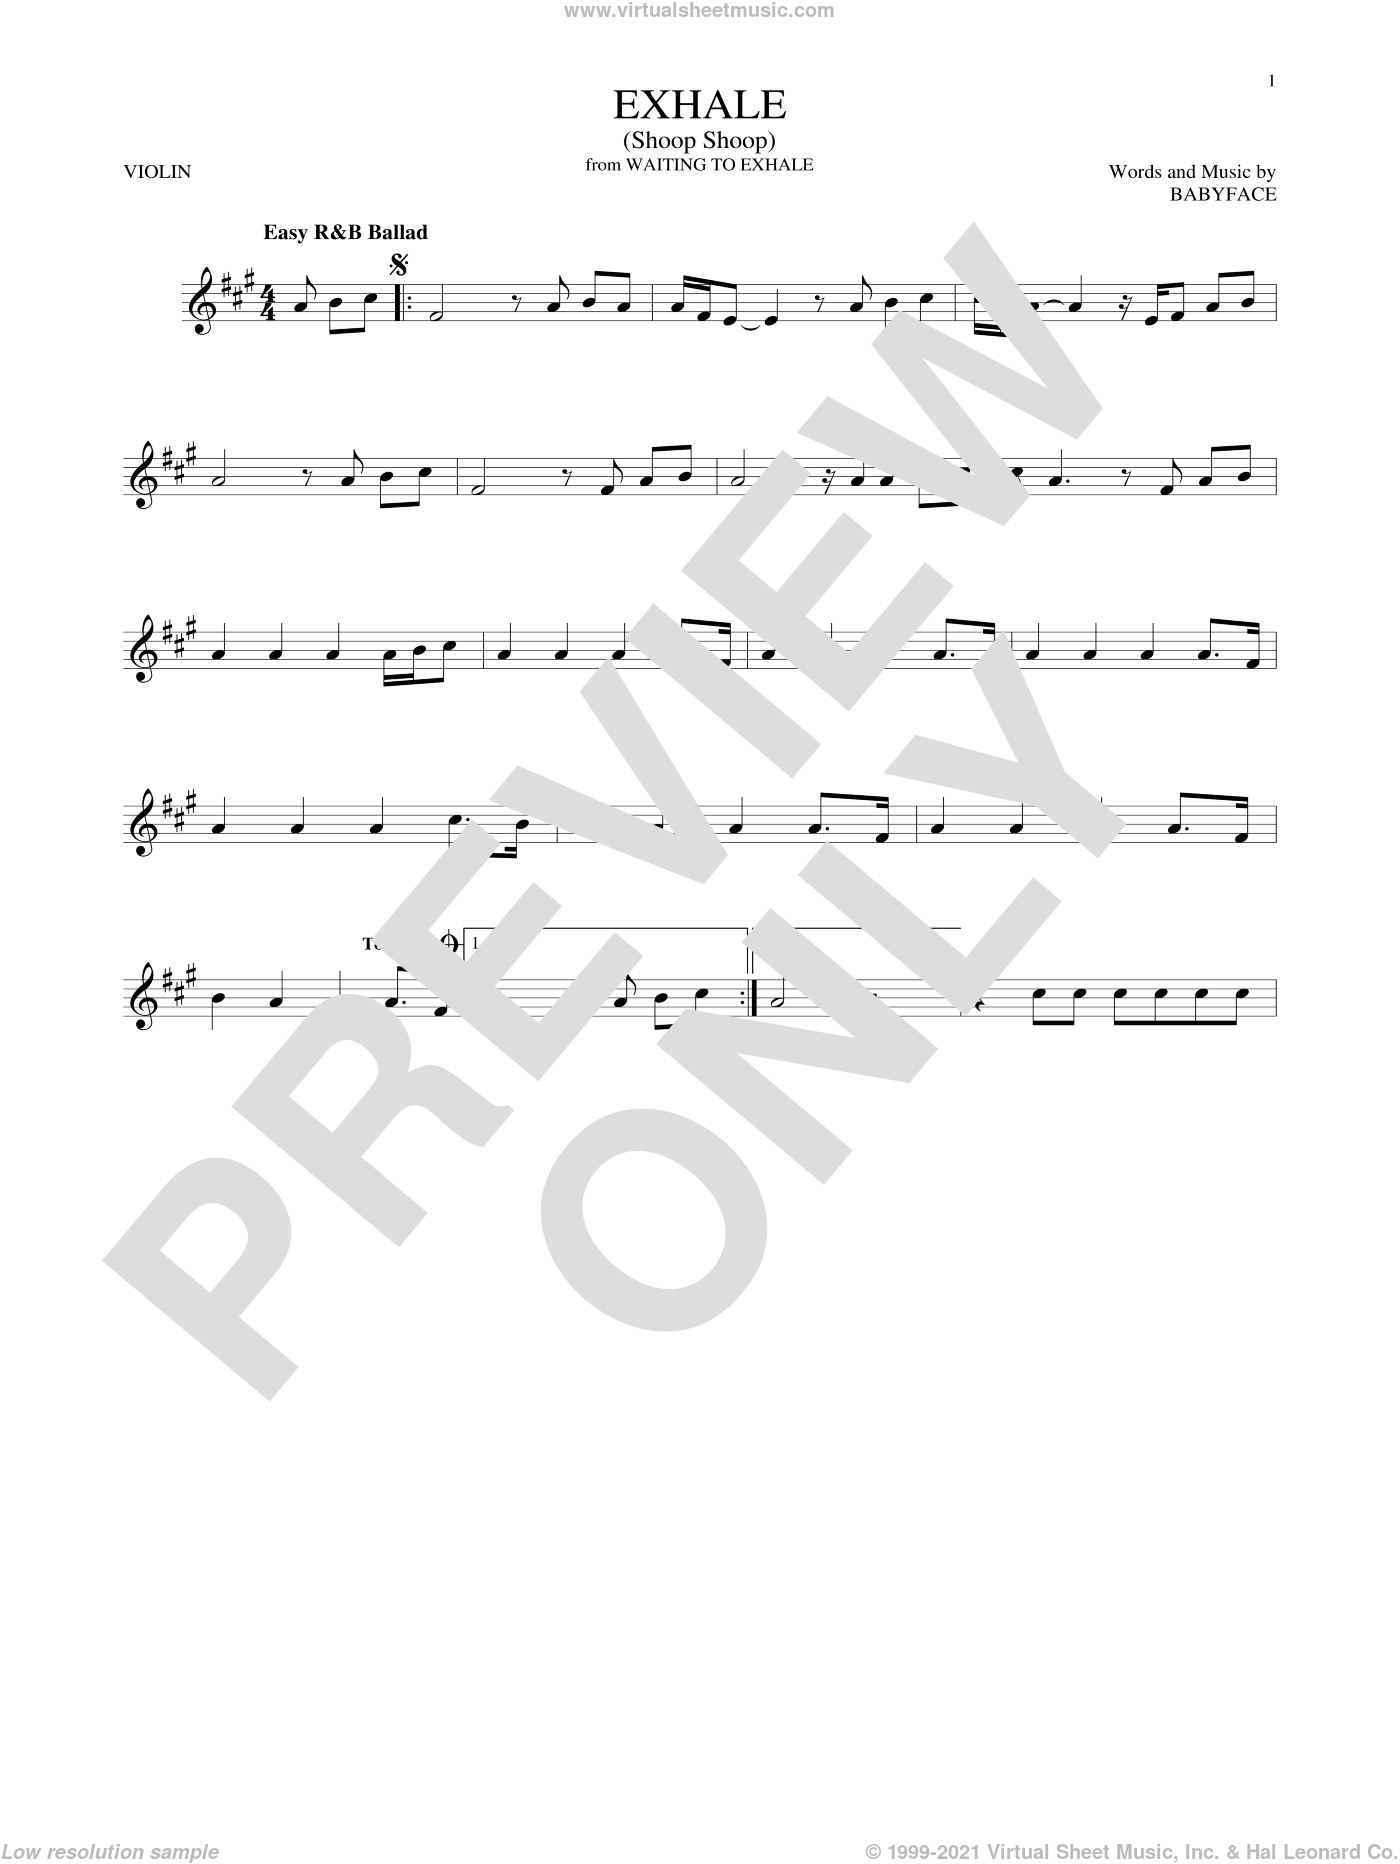 Exhale (Shoop Shoop) sheet music for violin solo by Whitney Houston and Babyface, intermediate skill level